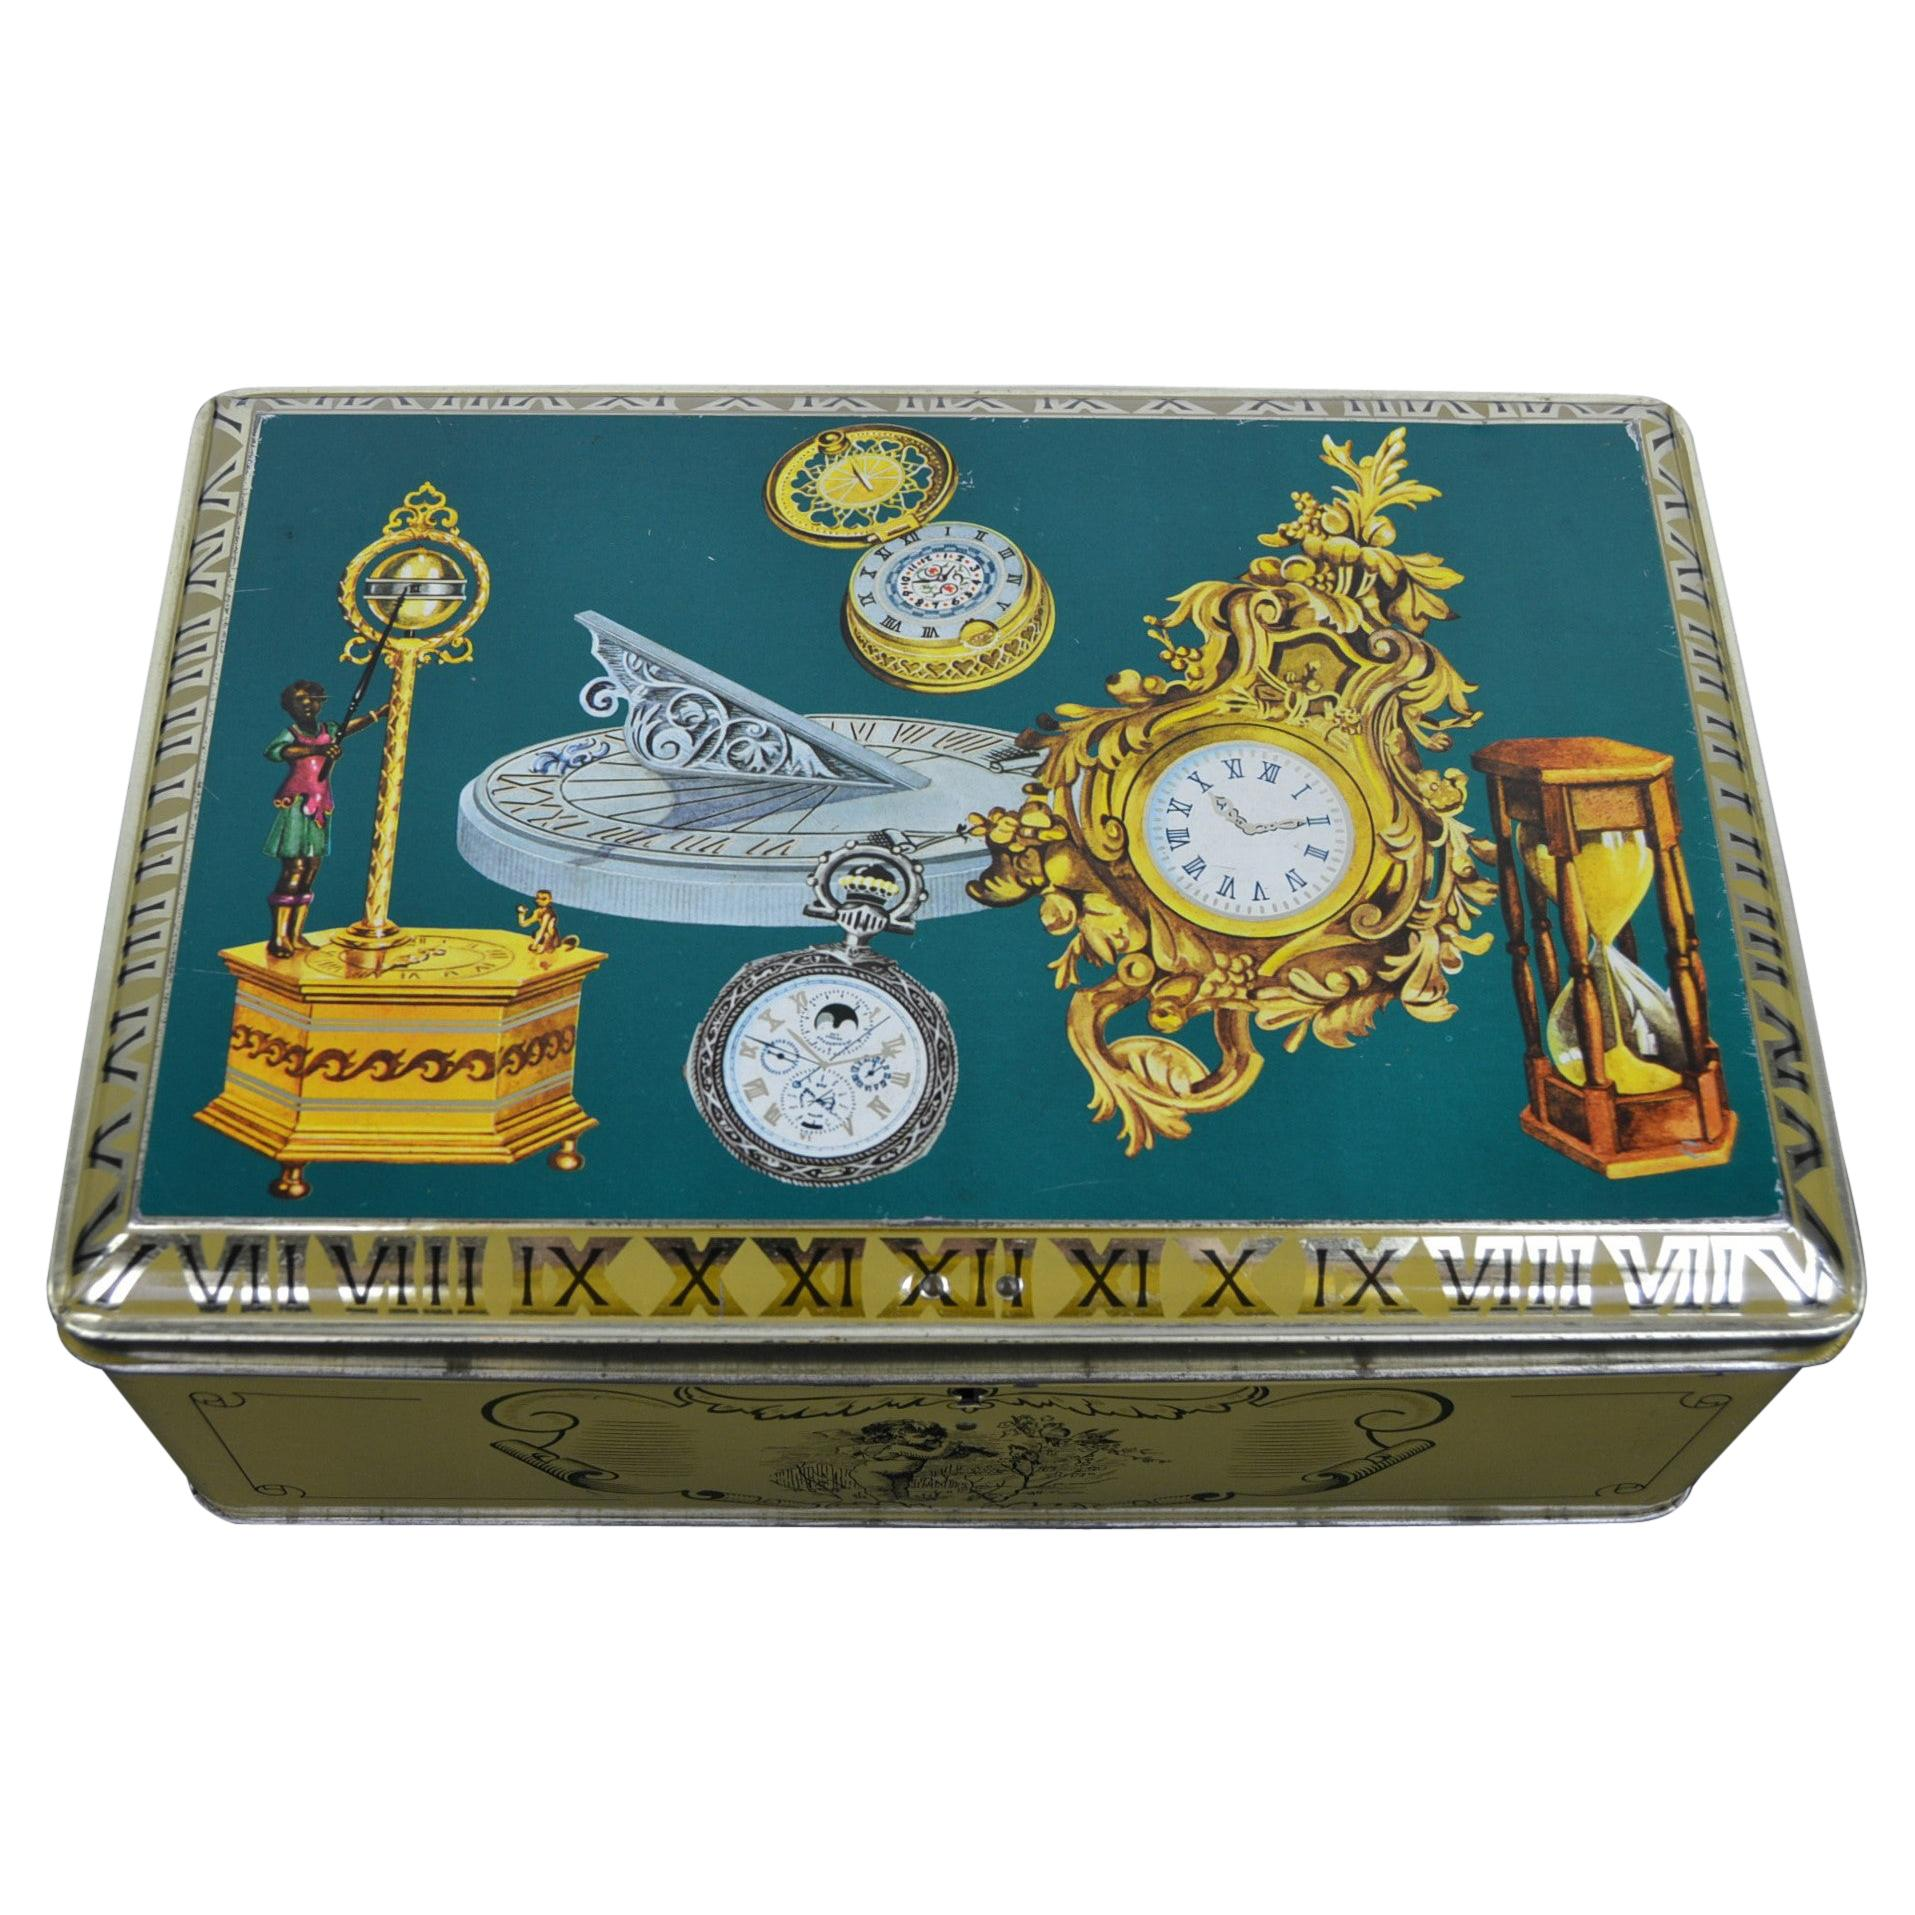 Antique Clocks and Watches, Timepieces Tin Box